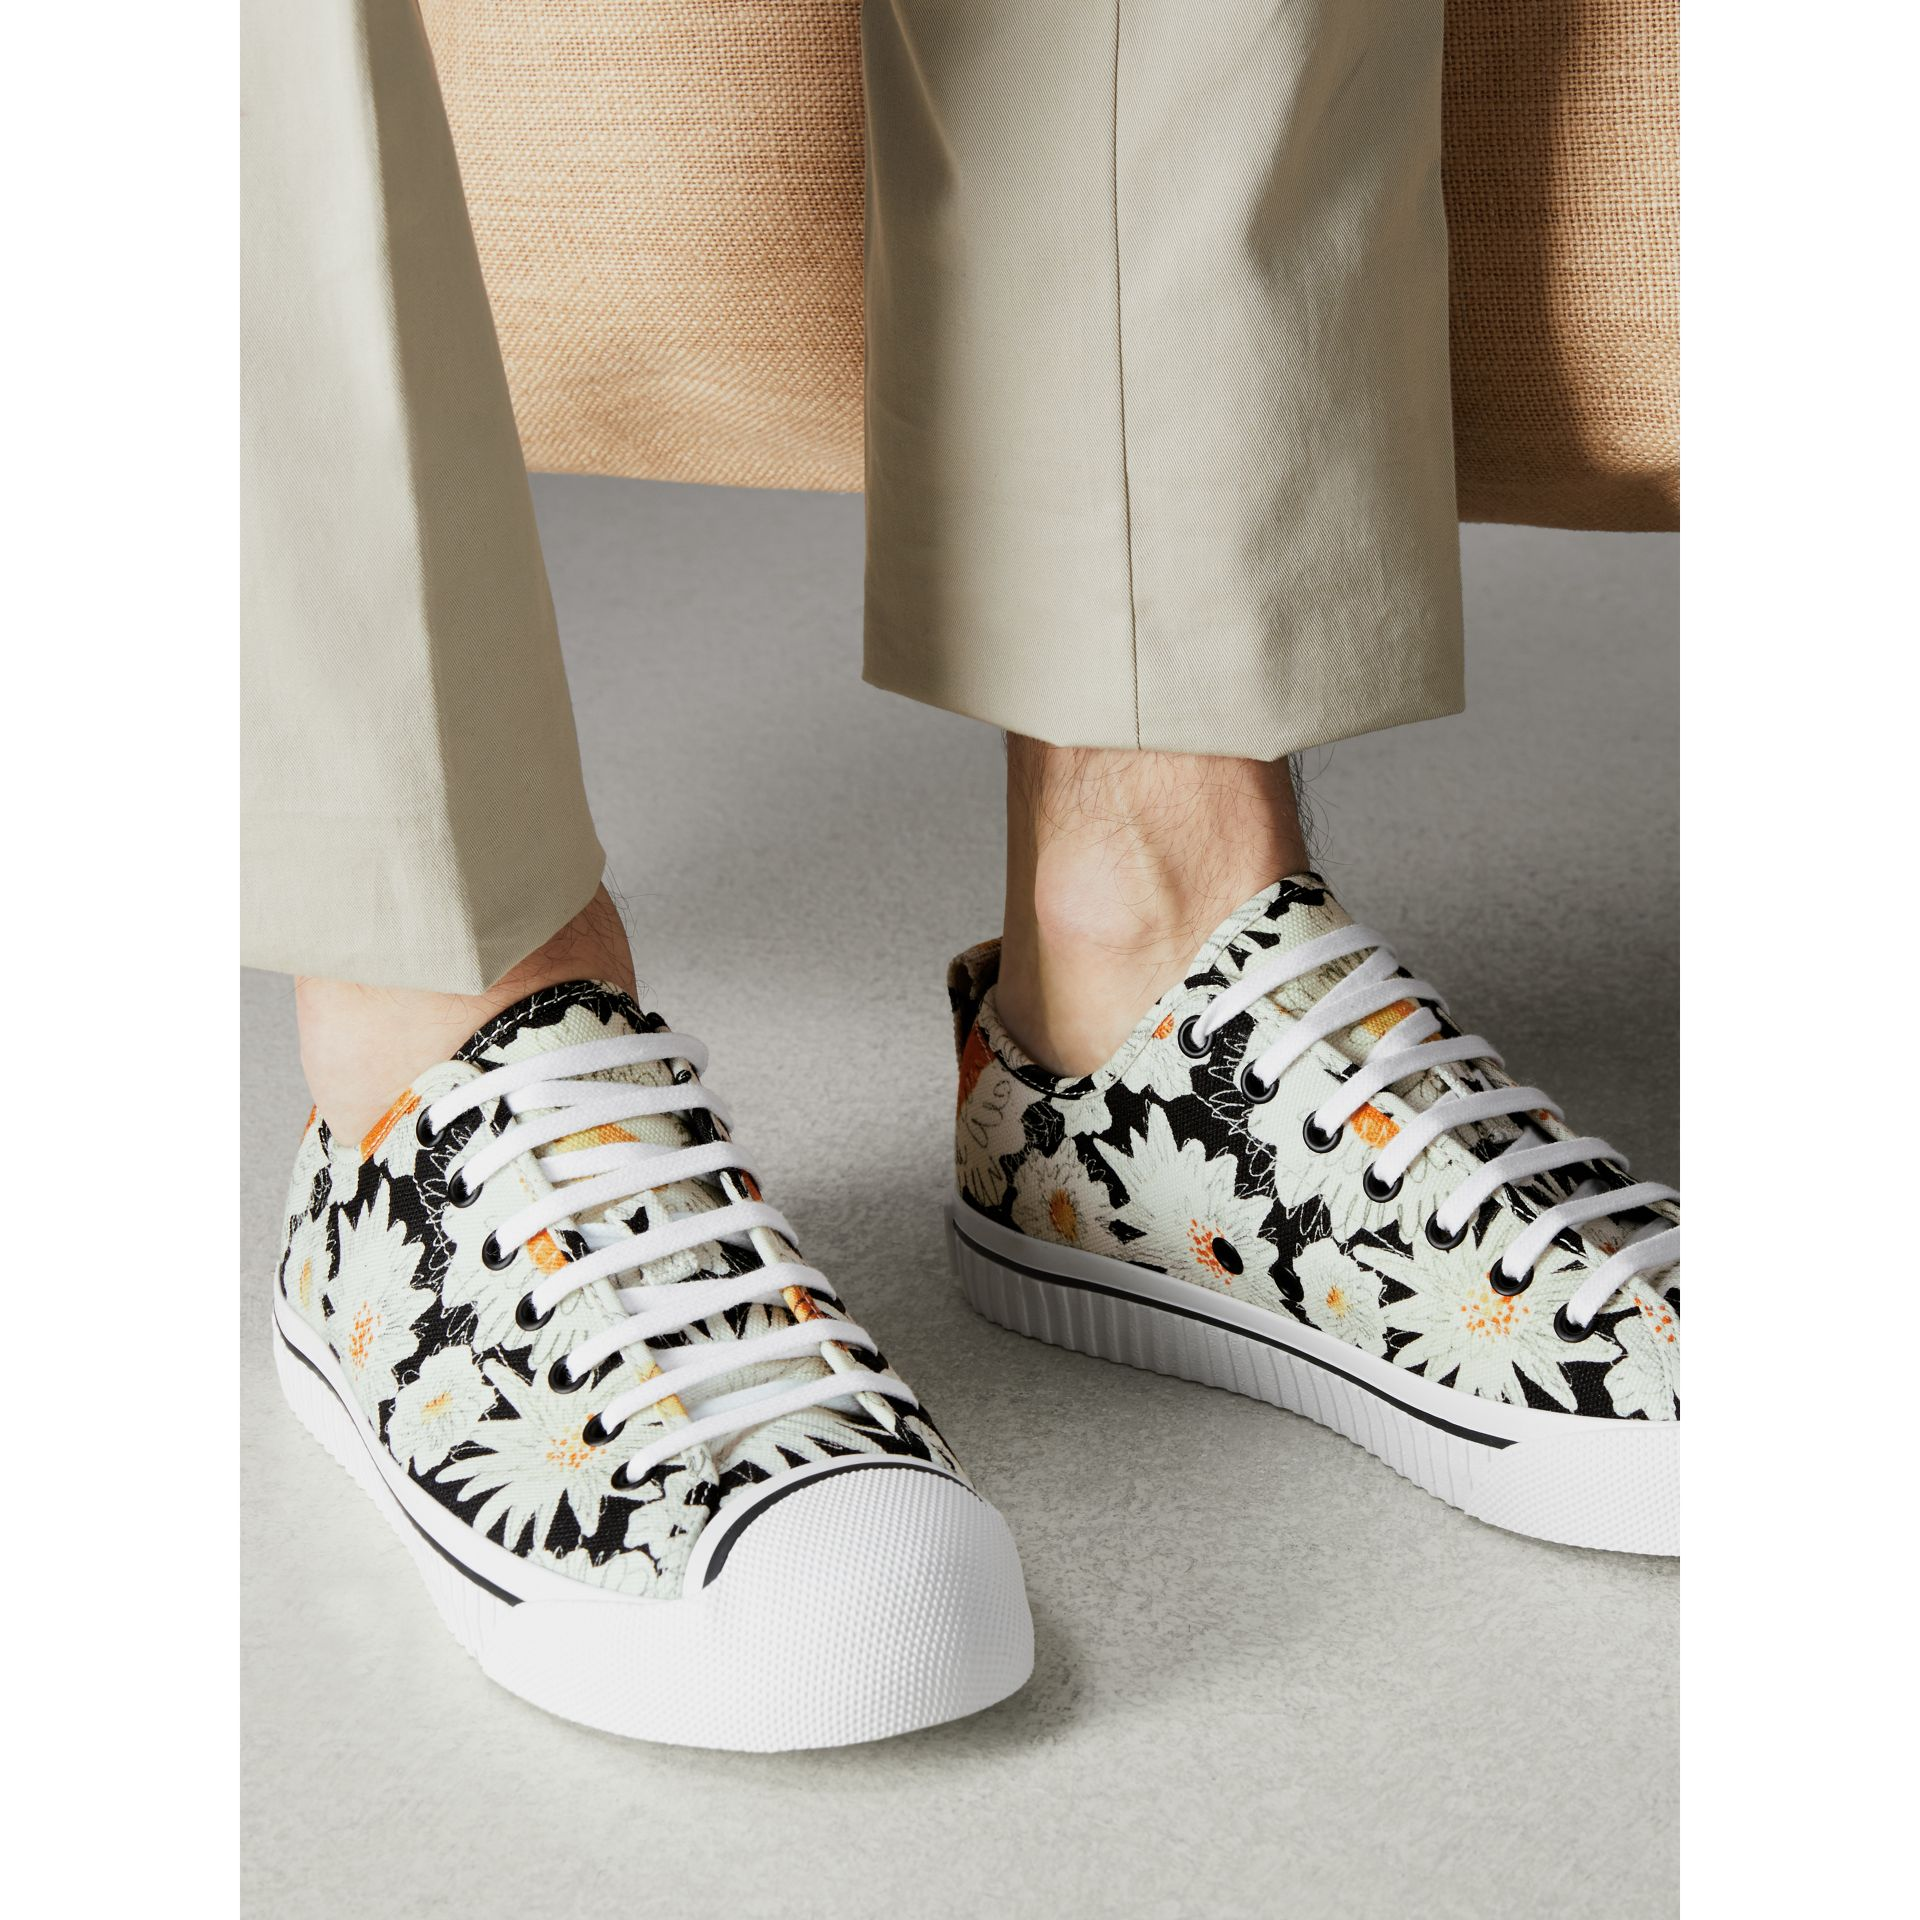 Daisy Print Cotton Canvas Sneakers in Black - Men | Burberry - gallery image 2